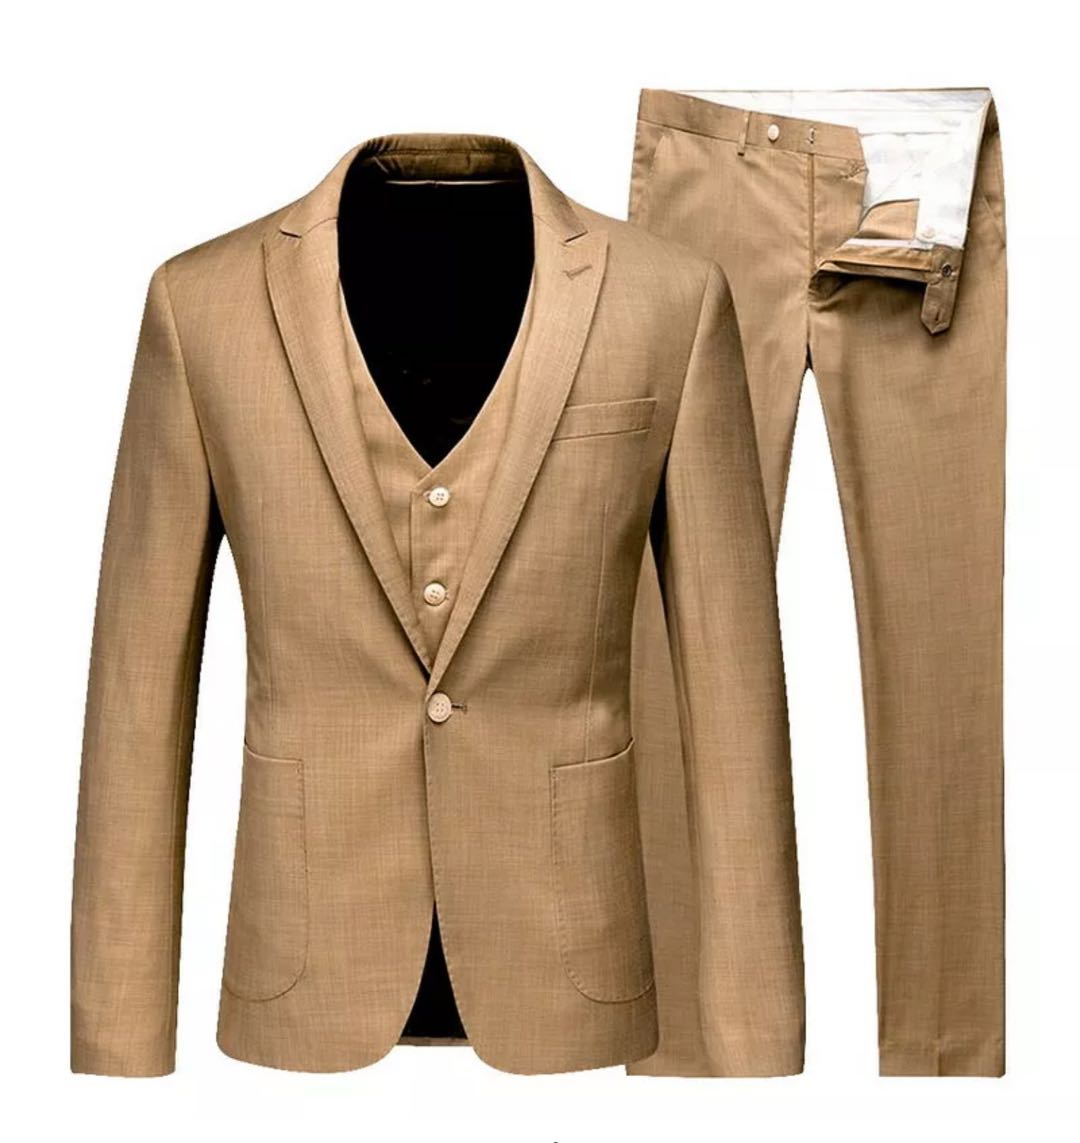 OEM wholesale fashion business suit long sleeve formal dress shirt